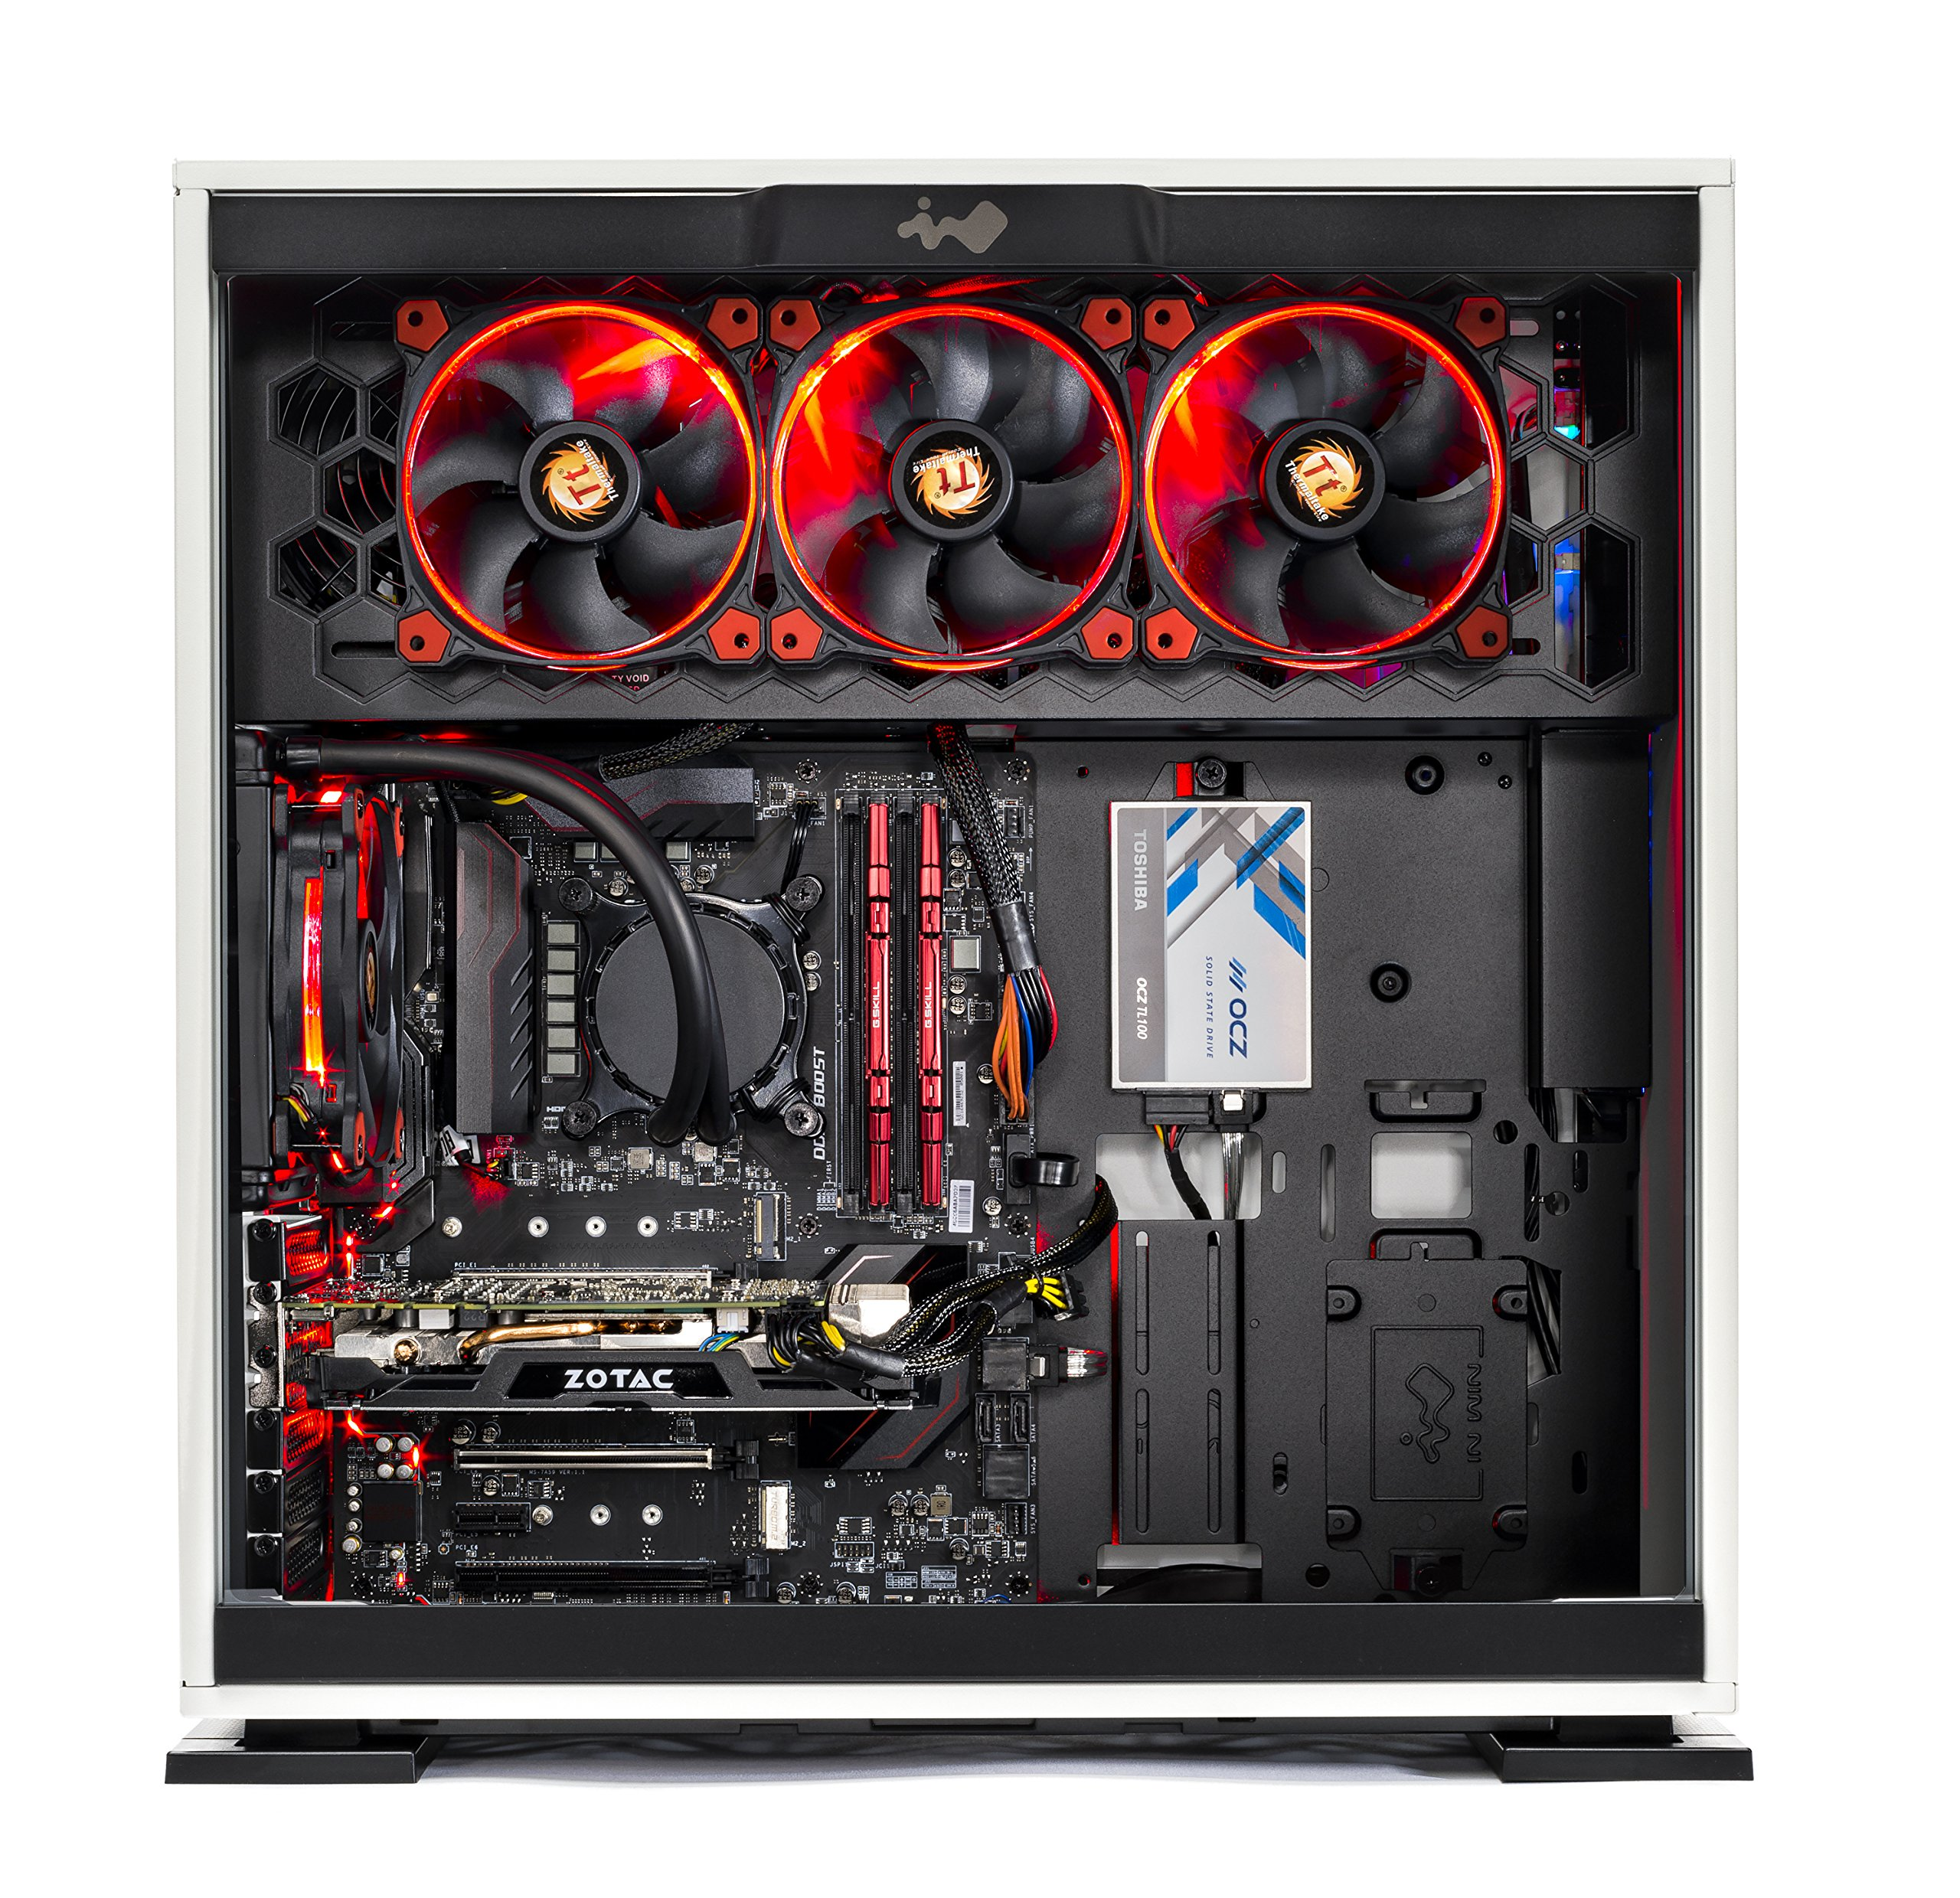 SkyTech Omega Gaming Computer Desktop PC Intel i7-7700K 4.2Ghz, Liquid Cooled, GTX 1080 8GB, 2TB HDD, 240GB SSD, 16GB DDR4, Z270 Motherboard, Win 10 Pro 64-bit (Intel I7 7700K | GTX 1080 Version) by Skytech Gaming (Image #1)